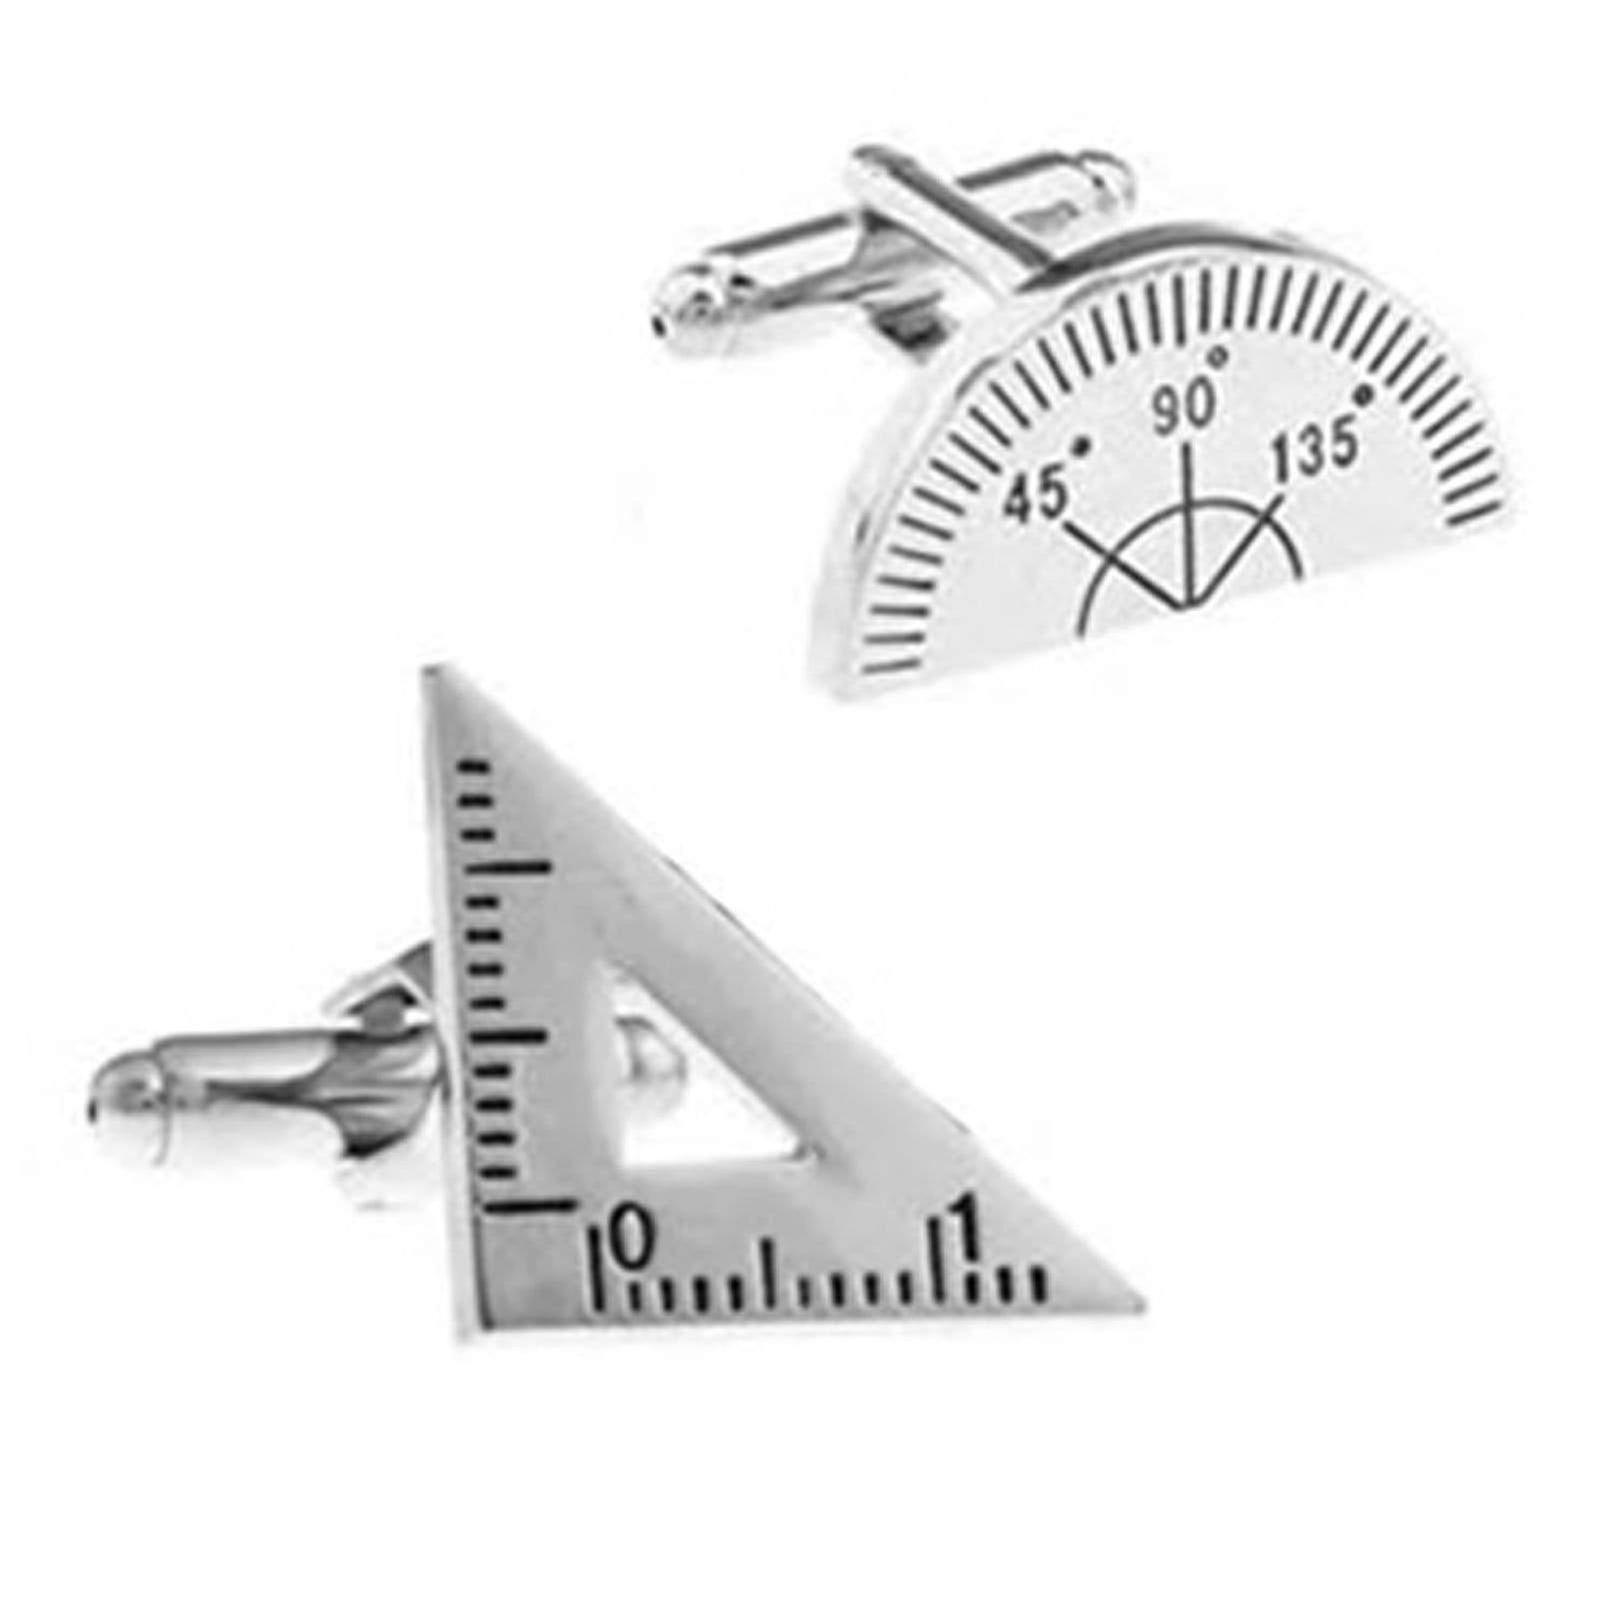 Handy man dad drawing theme stainless steel cufflinks